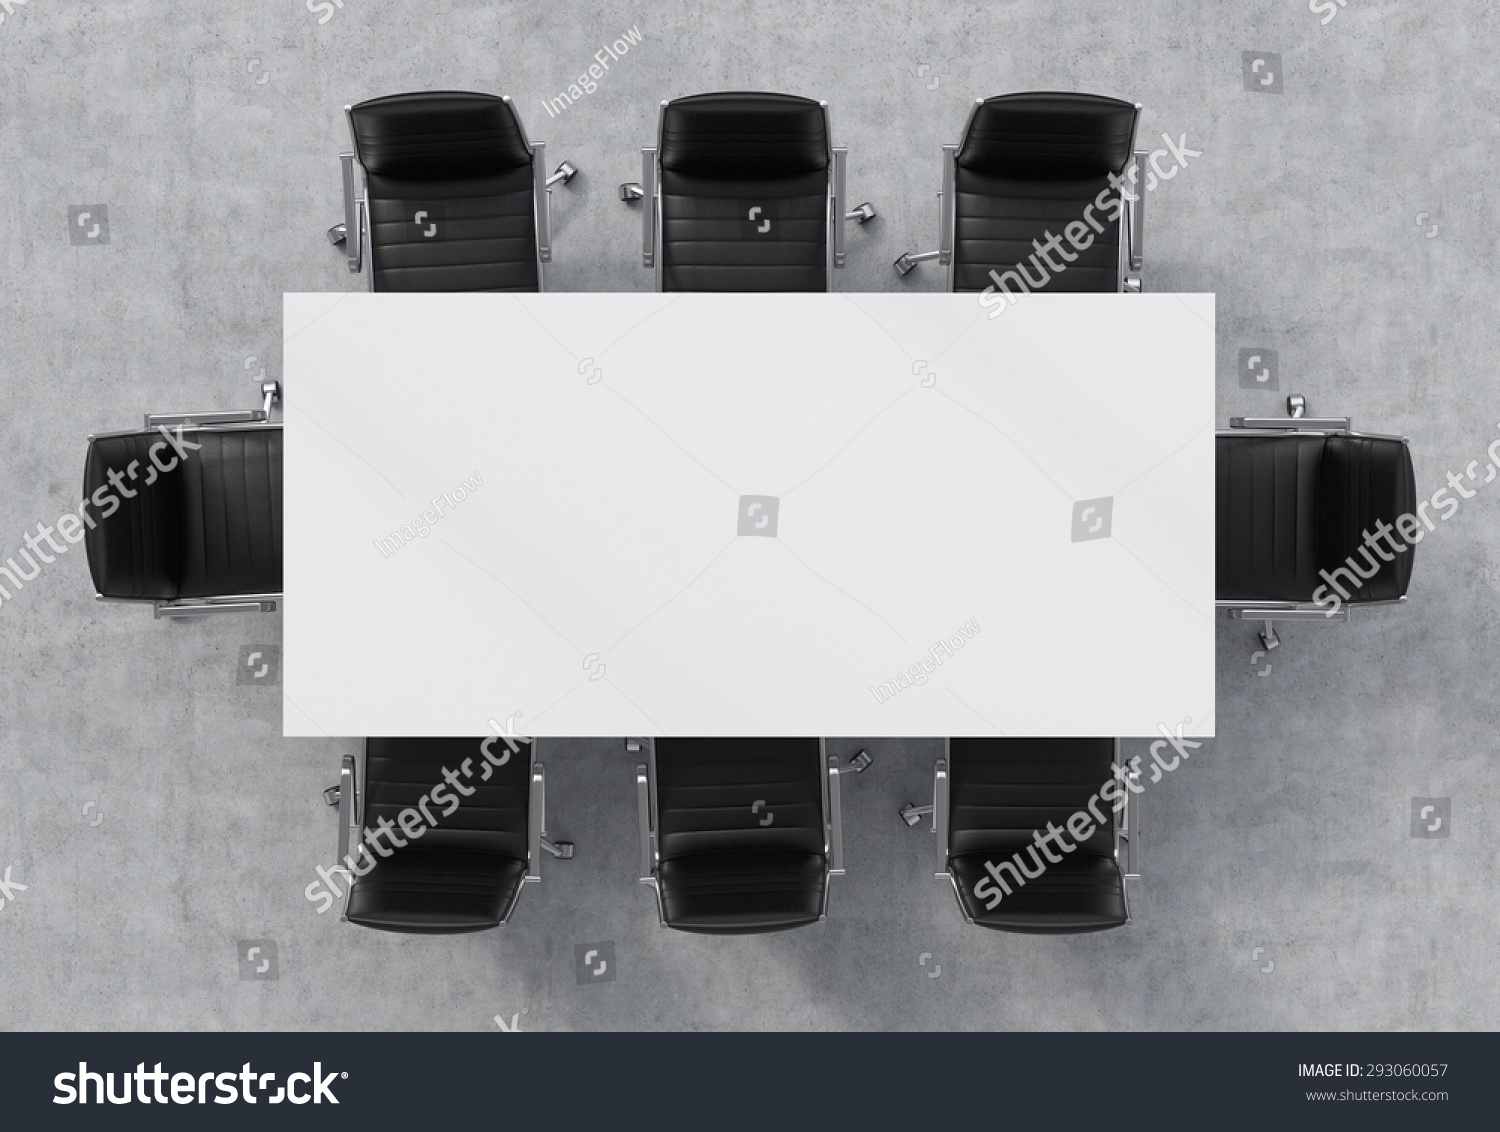 Top View Of A Conference Room A White Rectangular Table And Eight